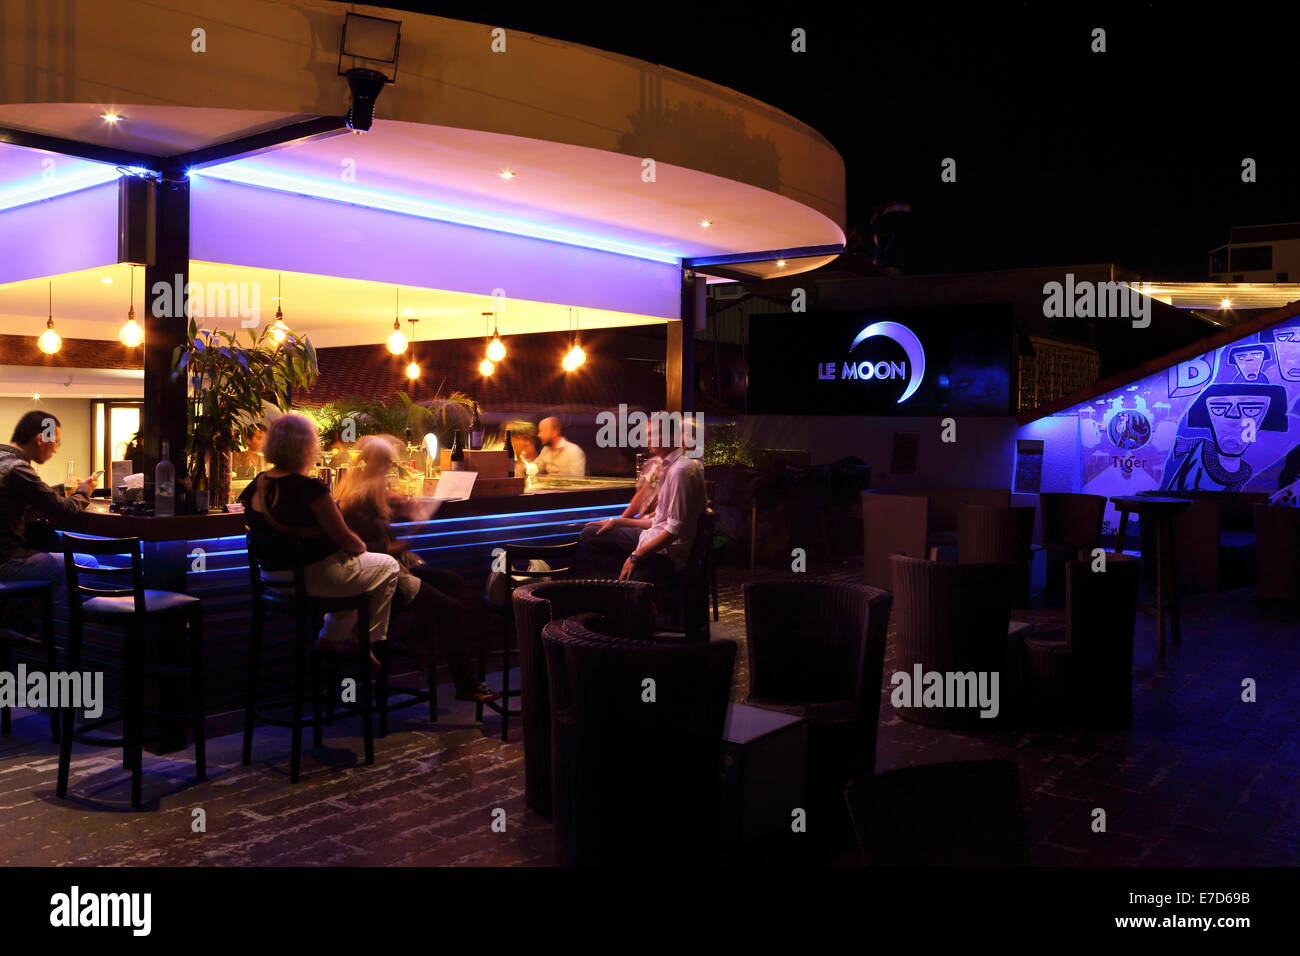 Le Moon rooftop bar in Phnom Penh, Cambodia. The bar is an upscale spot for cocktails, wine and beer. - Stock Image